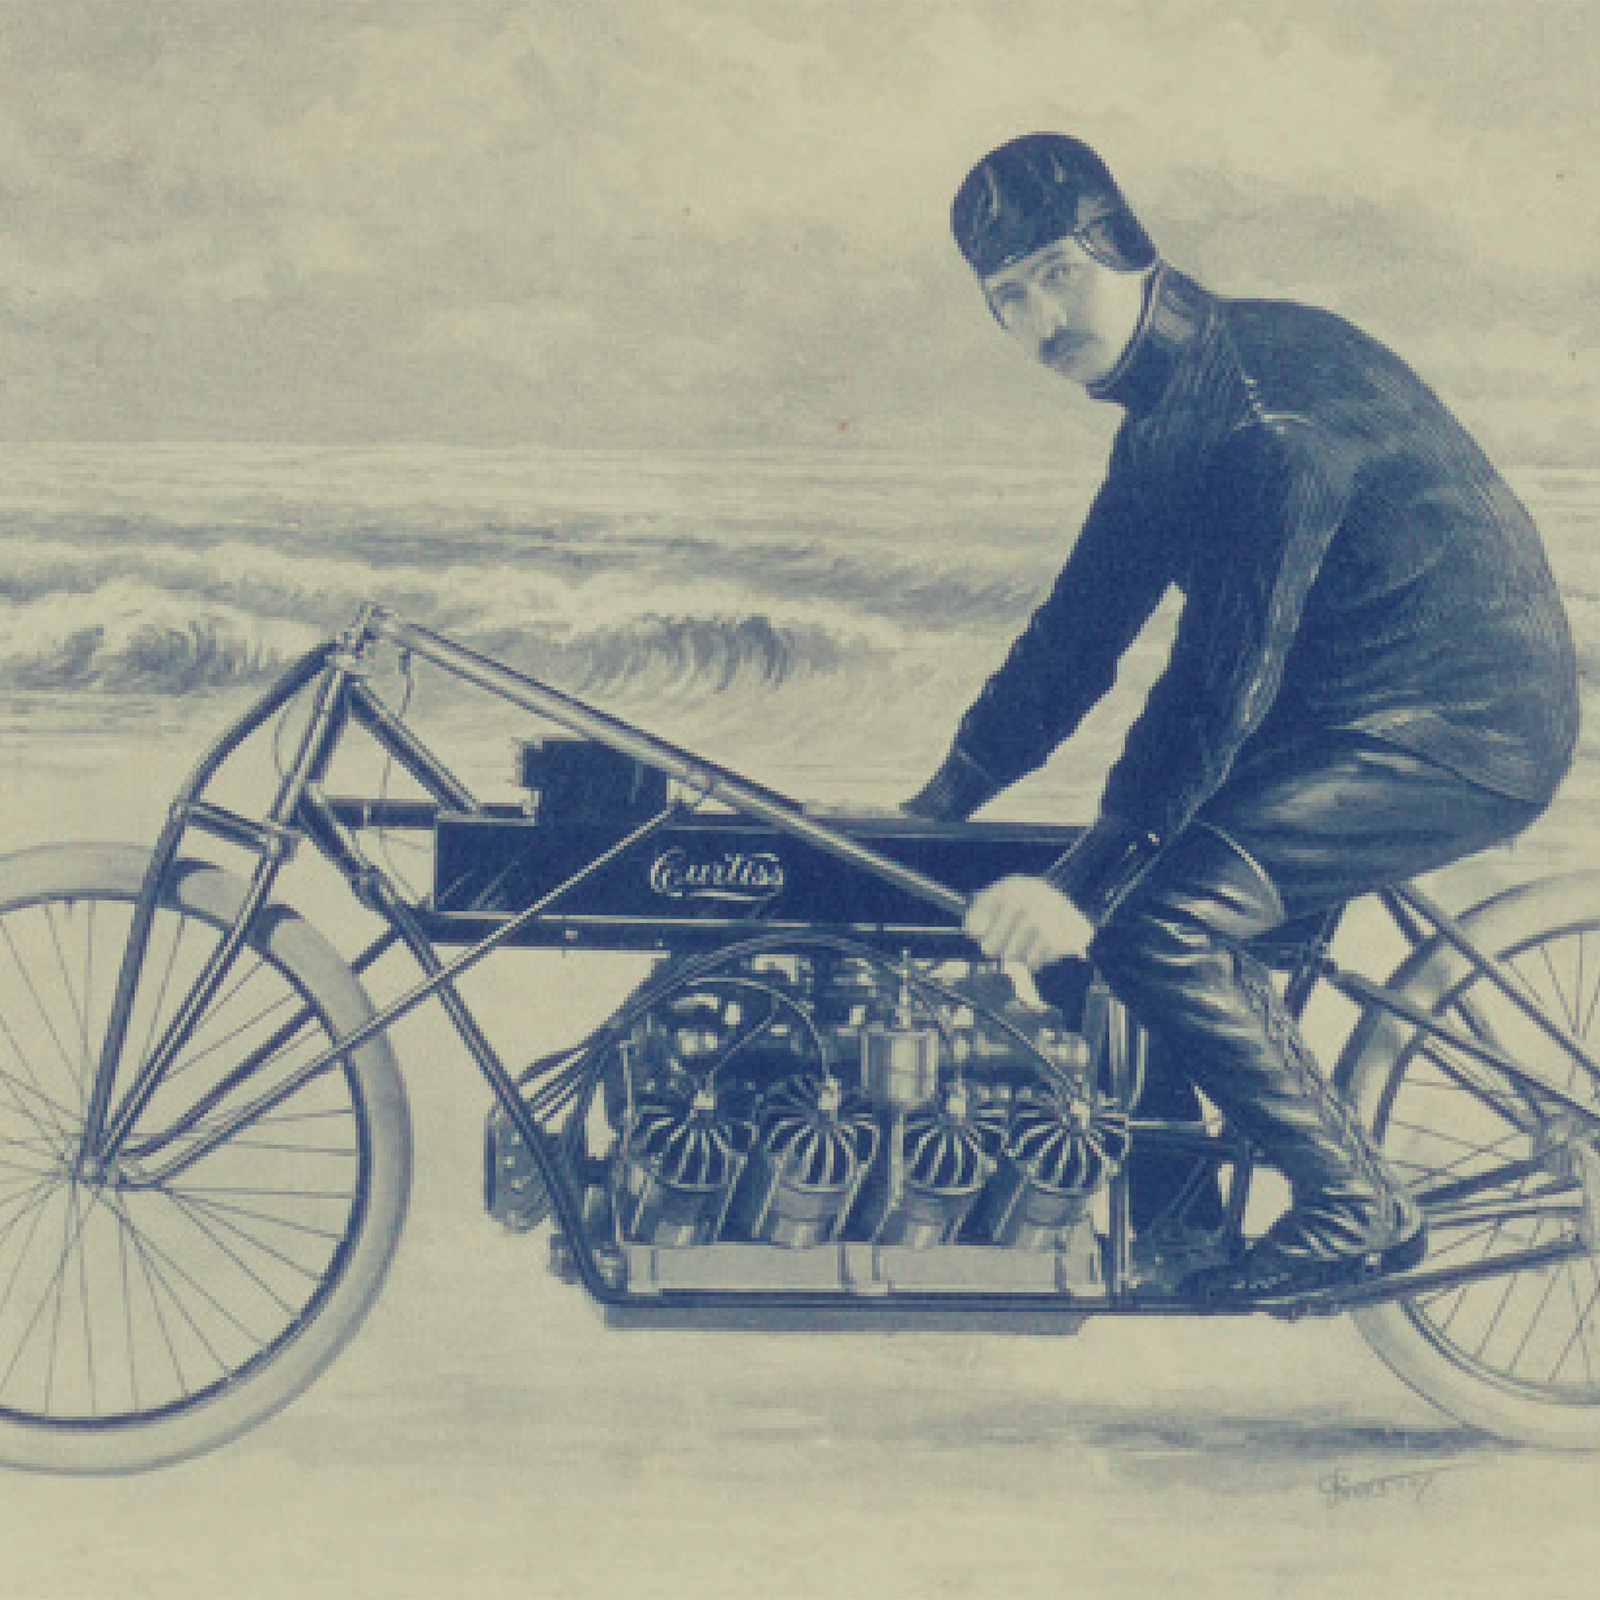 "On Jan. 24, 1907, Curtiss became the ""fastest man in the world"" by setting a land speed record of 136.36 MPH on Ormond Beach, FL on his V-8-powered motorcycle."